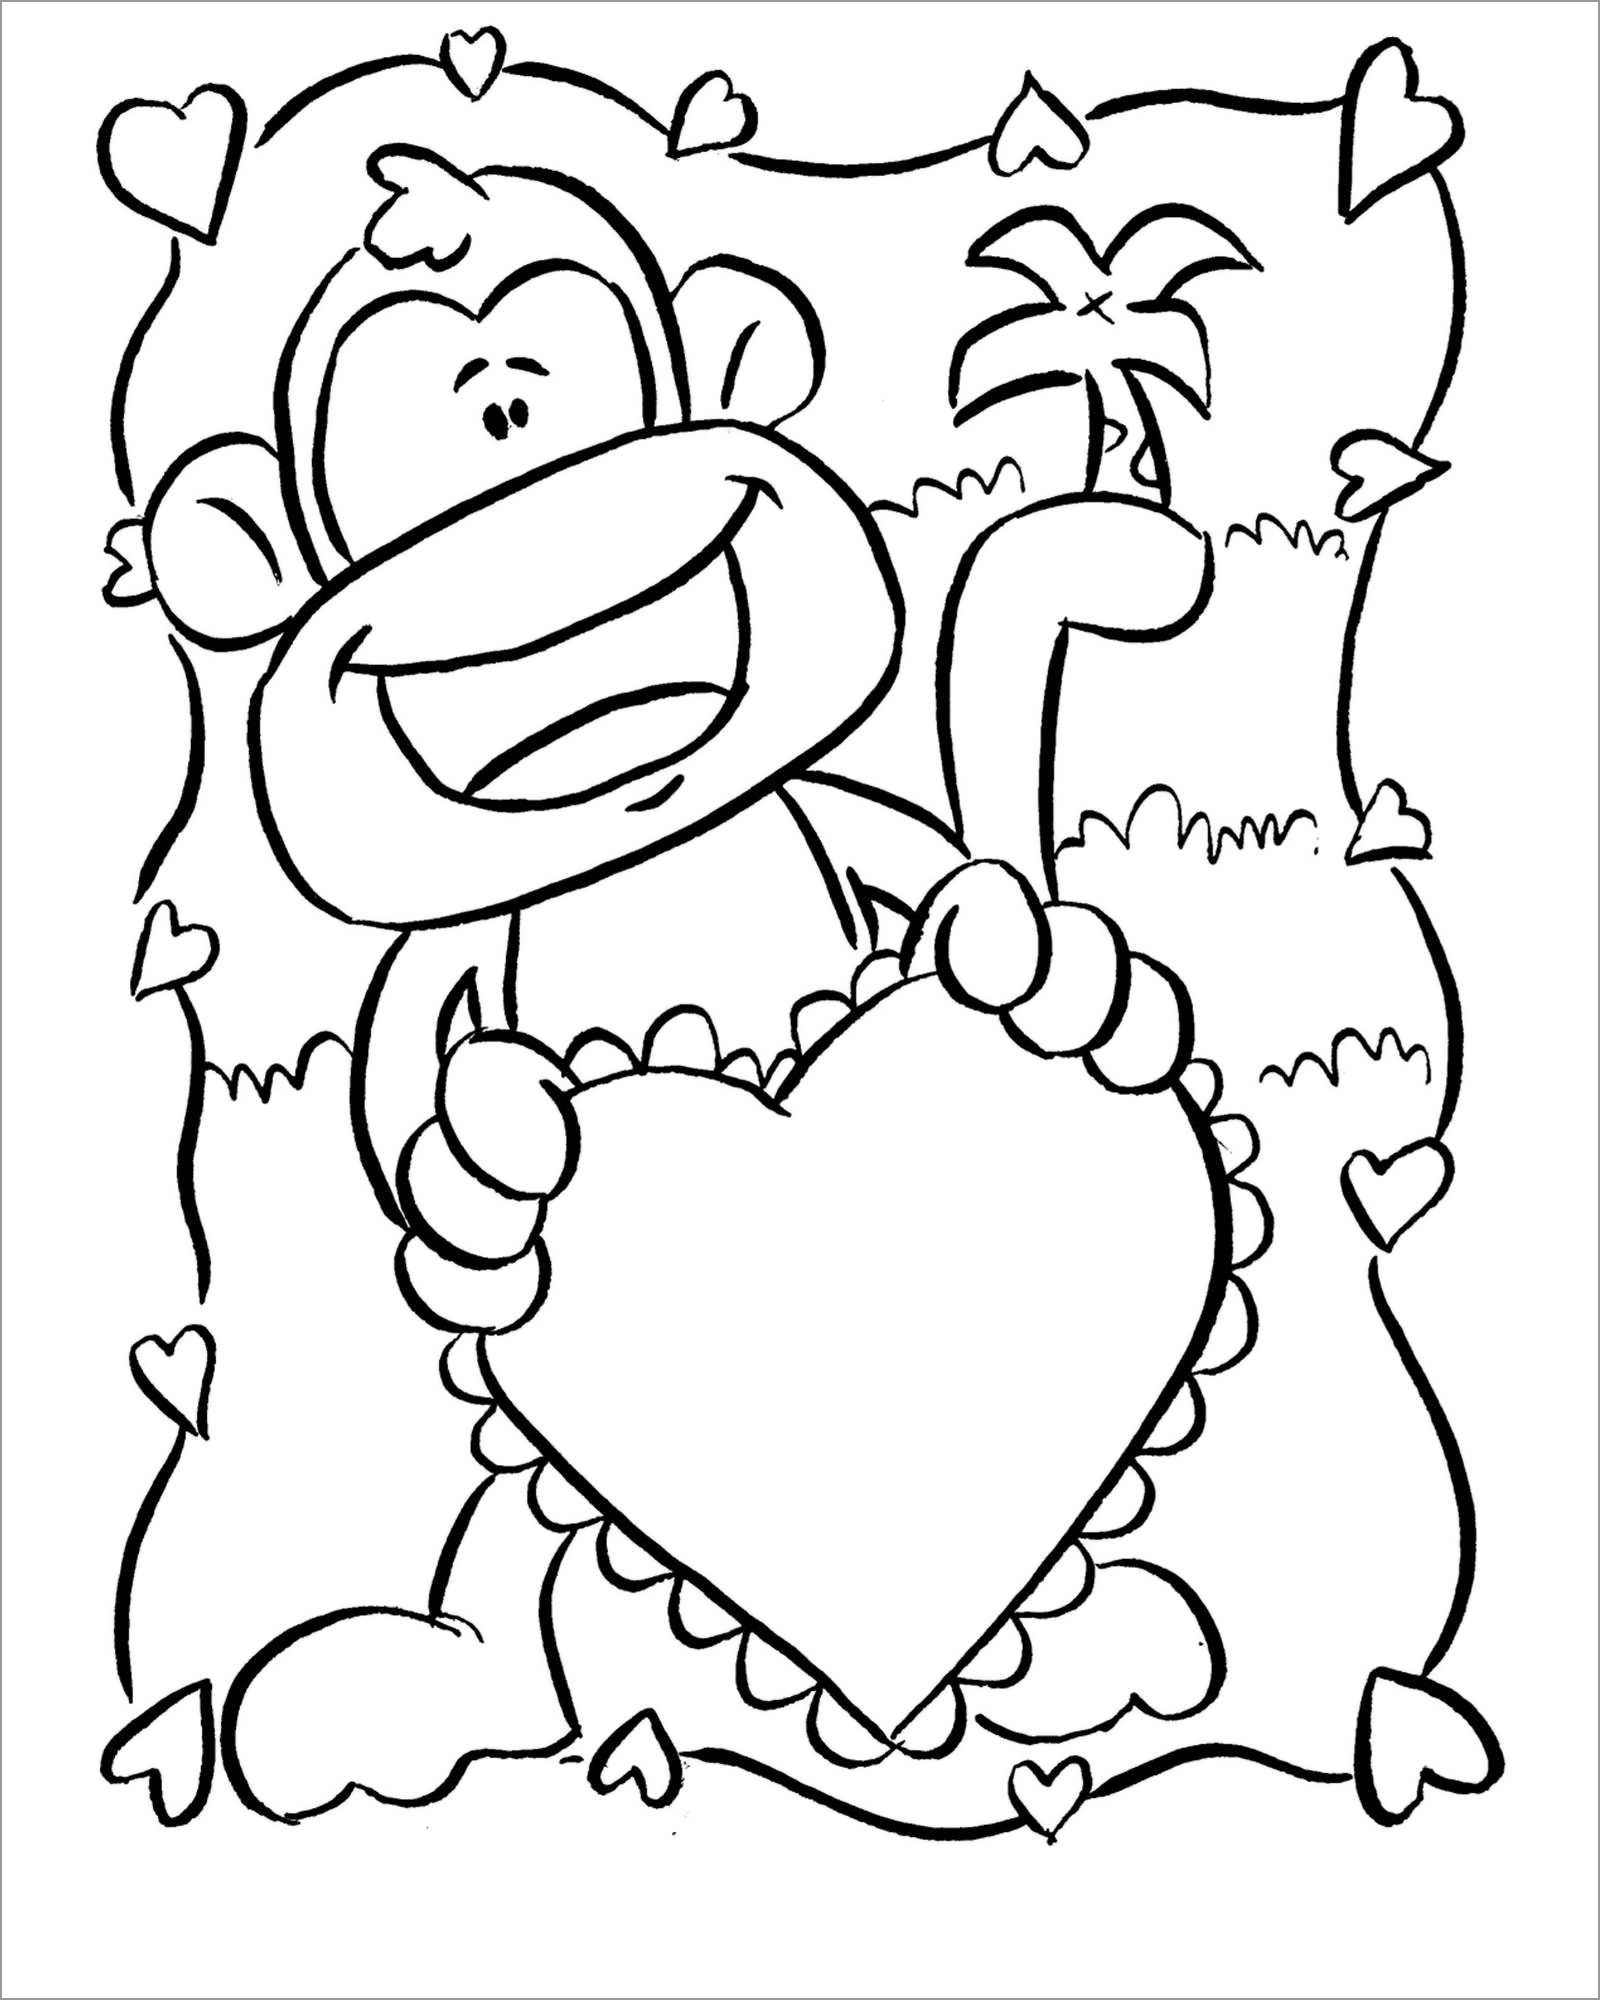 Cute Baby Monkeys Coloring Page